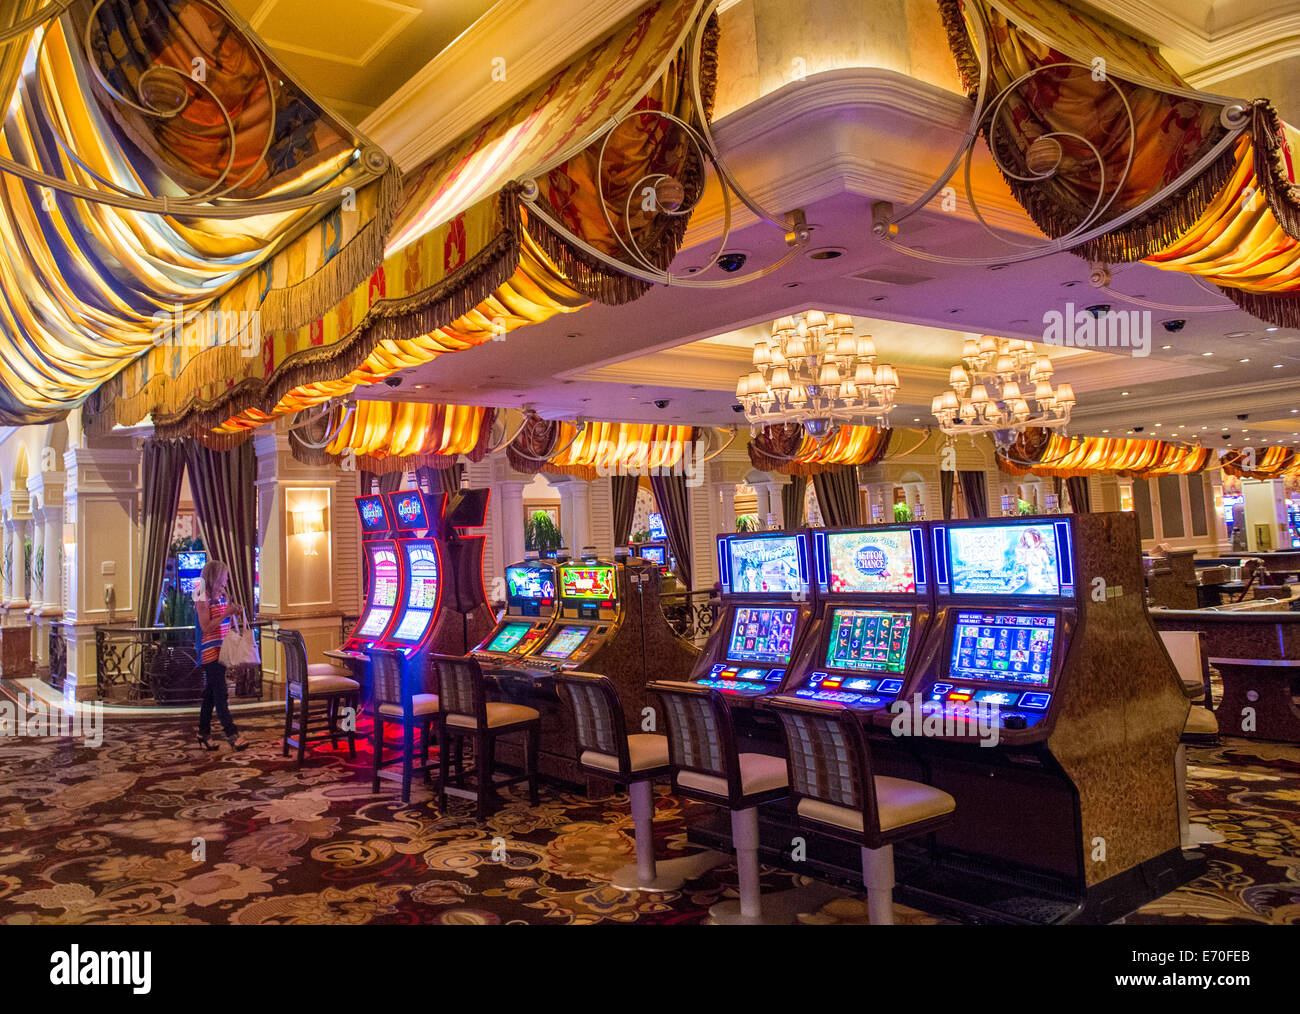 Bellagios hotel and casino swinging bells casino slot